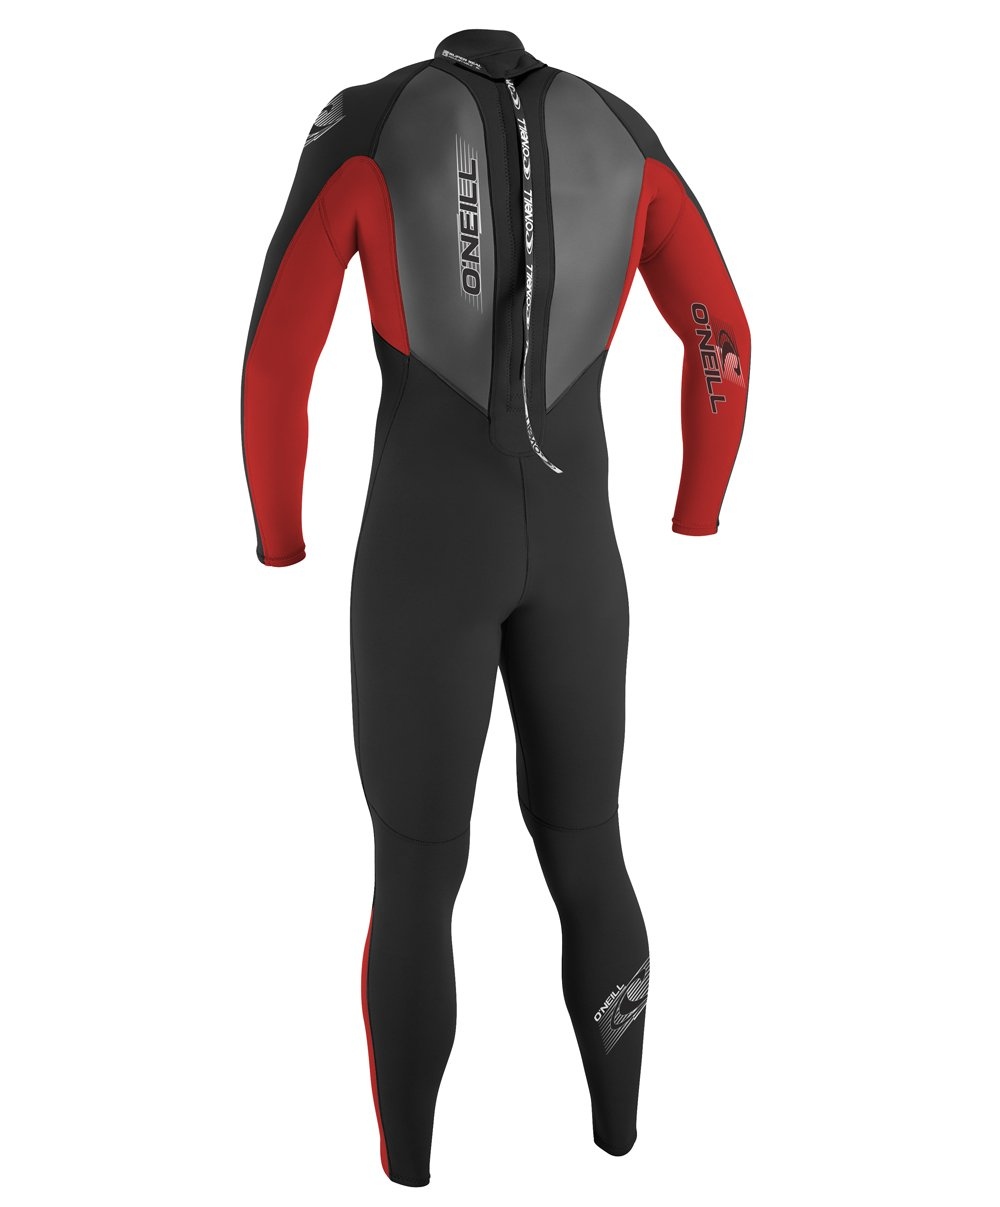 O'Neill Youth Reactor 3/2mm Back Zip Full Wetsuit, Black/Red/Graphite, 8 by O'Neill Wetsuits (Image #3)